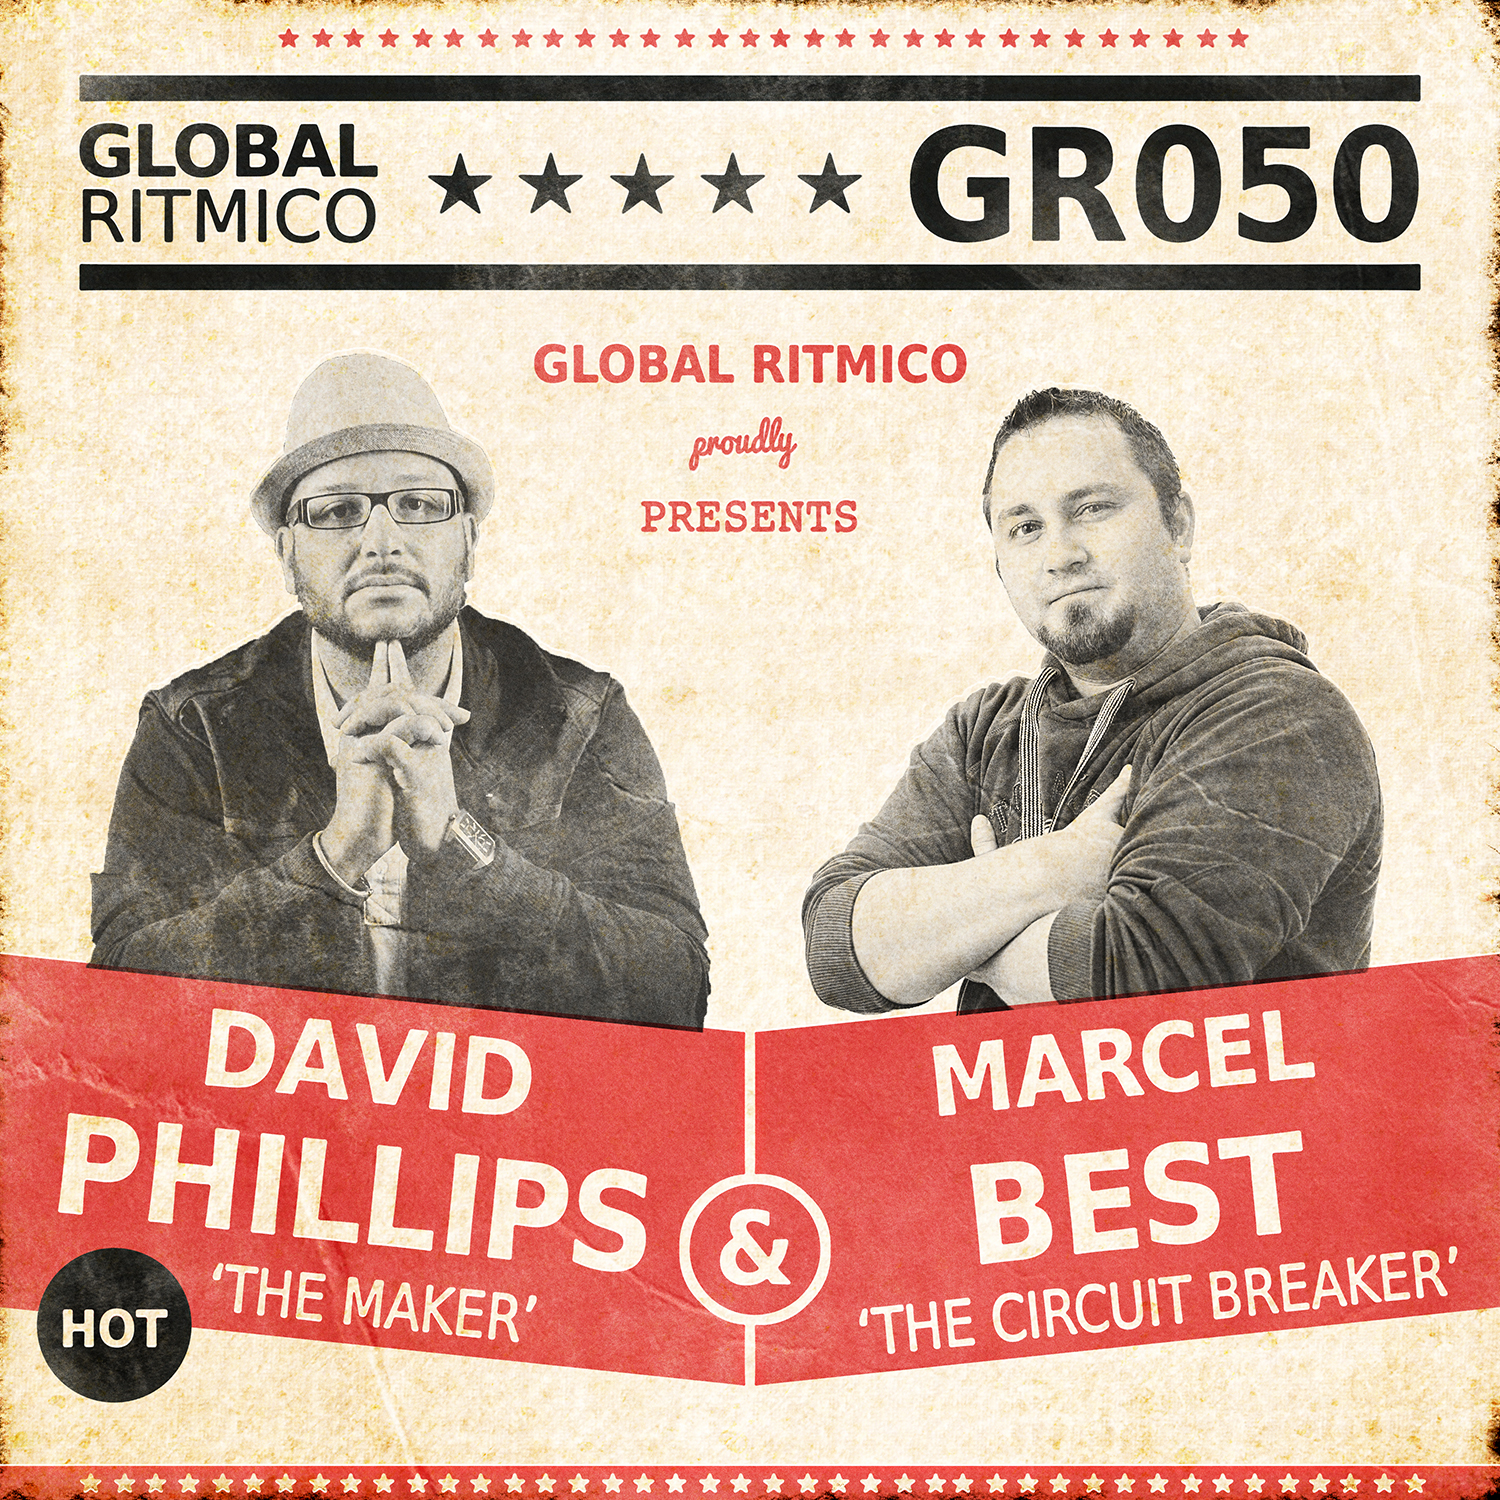 David Phillips & Marcel Best – GR050